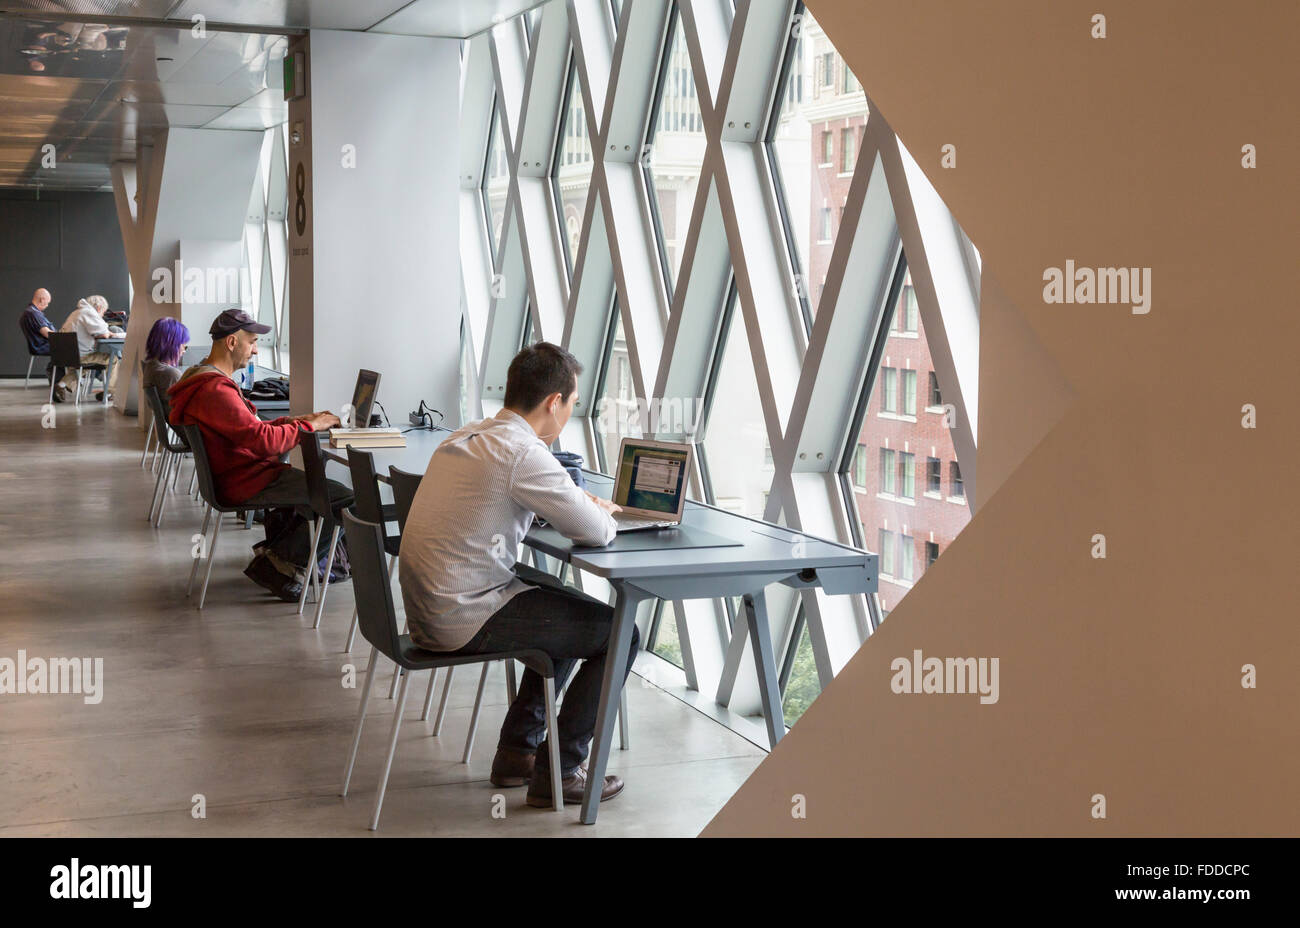 People working at desks and using computers in the Seattle Central Library, designed by Rem Koolhaas and Joshua - Stock Image